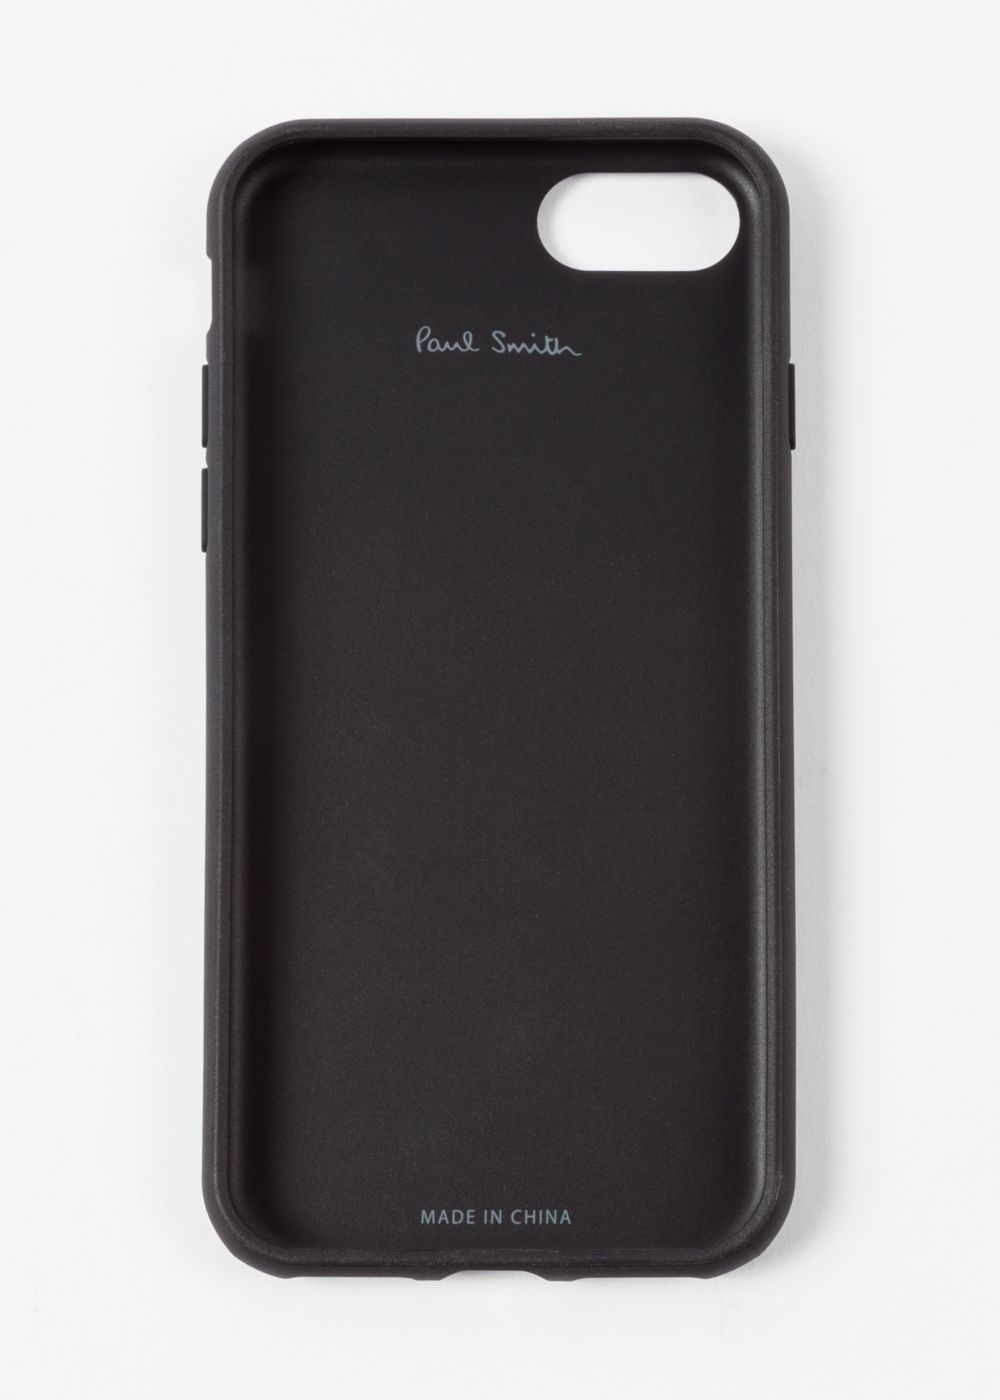 ☆日本未入荷☆新作Paul Smith*Motif Lenticular iPhone 7 Case